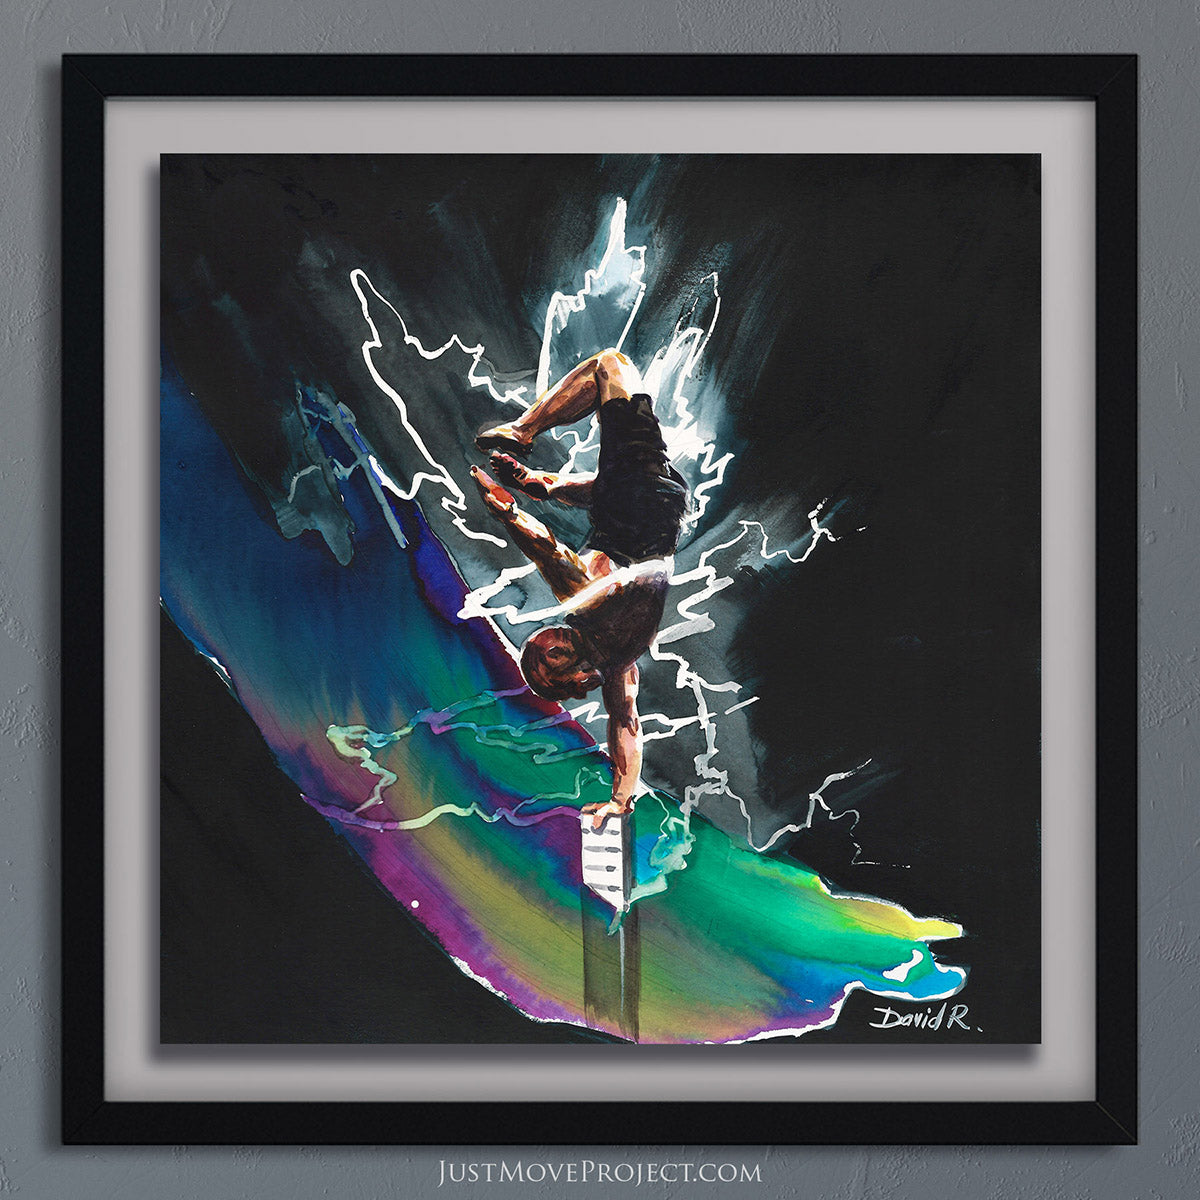 david roman art just move project 2 watercolour watercolor painting vibrant wall art home decor wall art framed canvas inspired by movement and athletes turquoise teal handstand handbalance balance